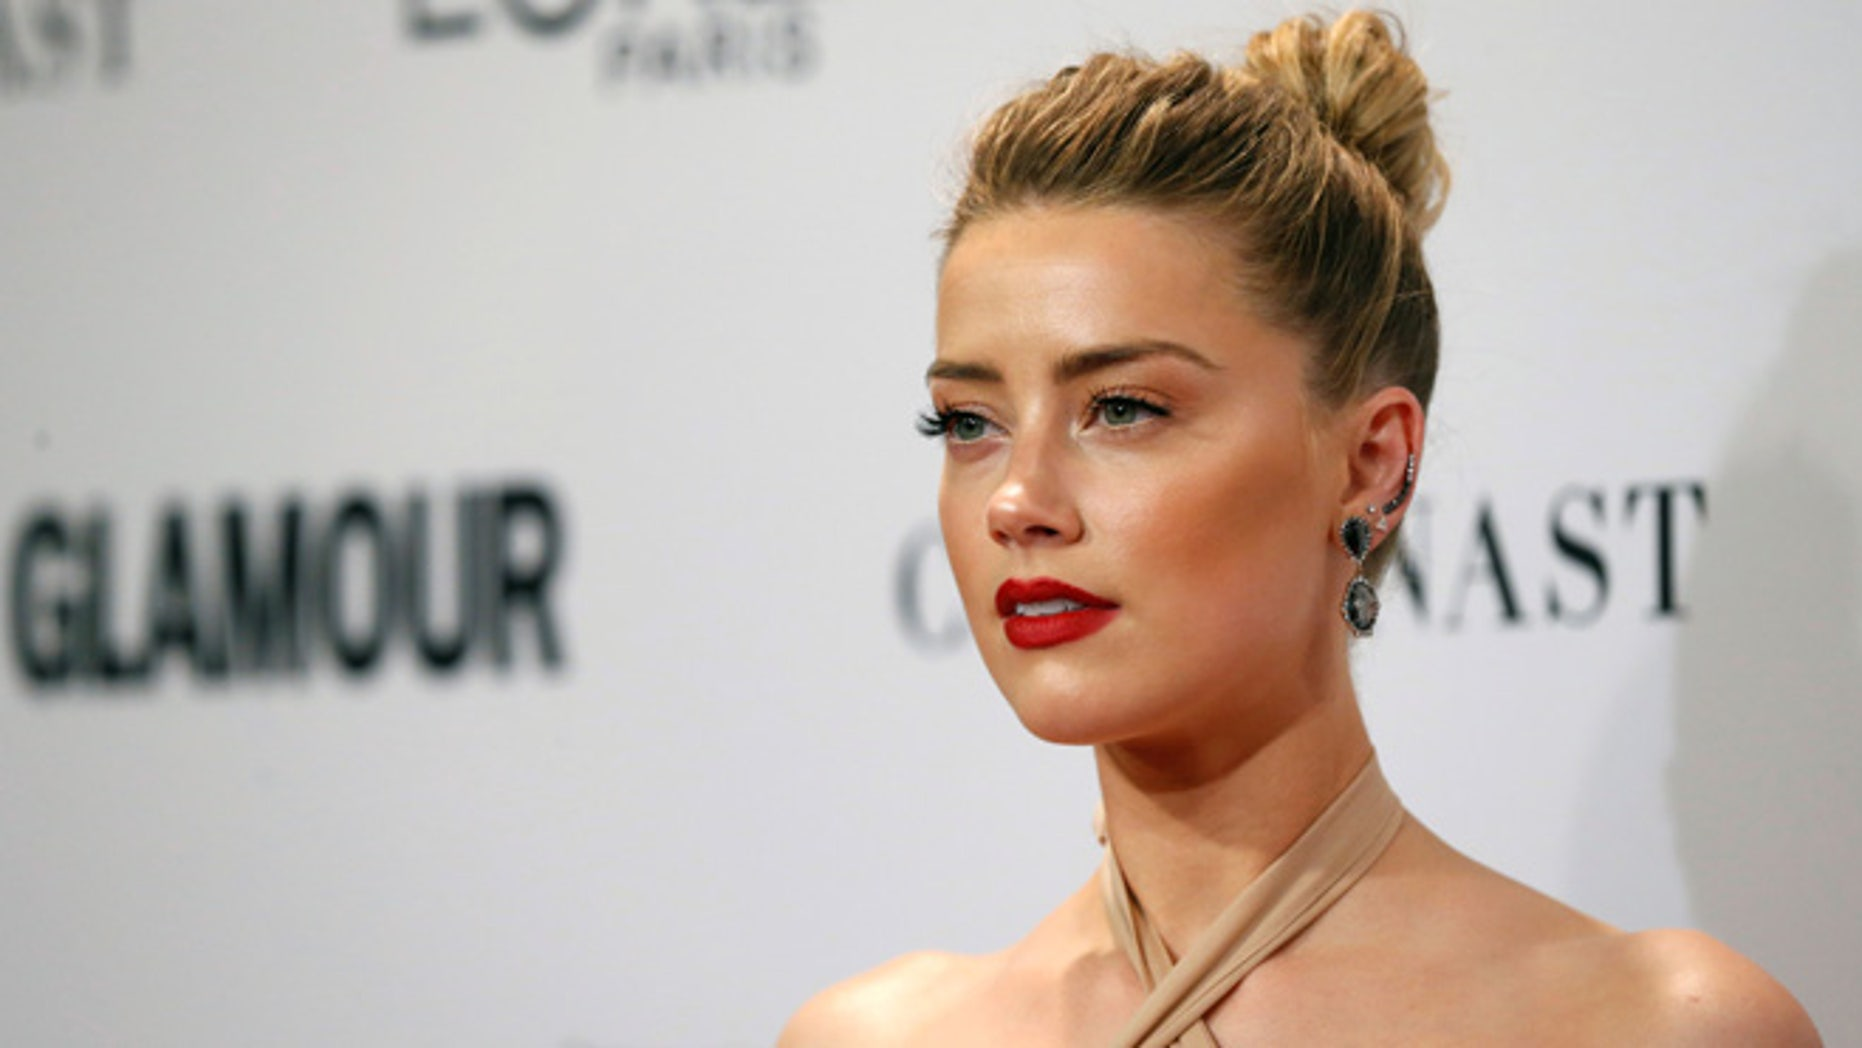 Amber Heard talked about her sexuality at a summit.